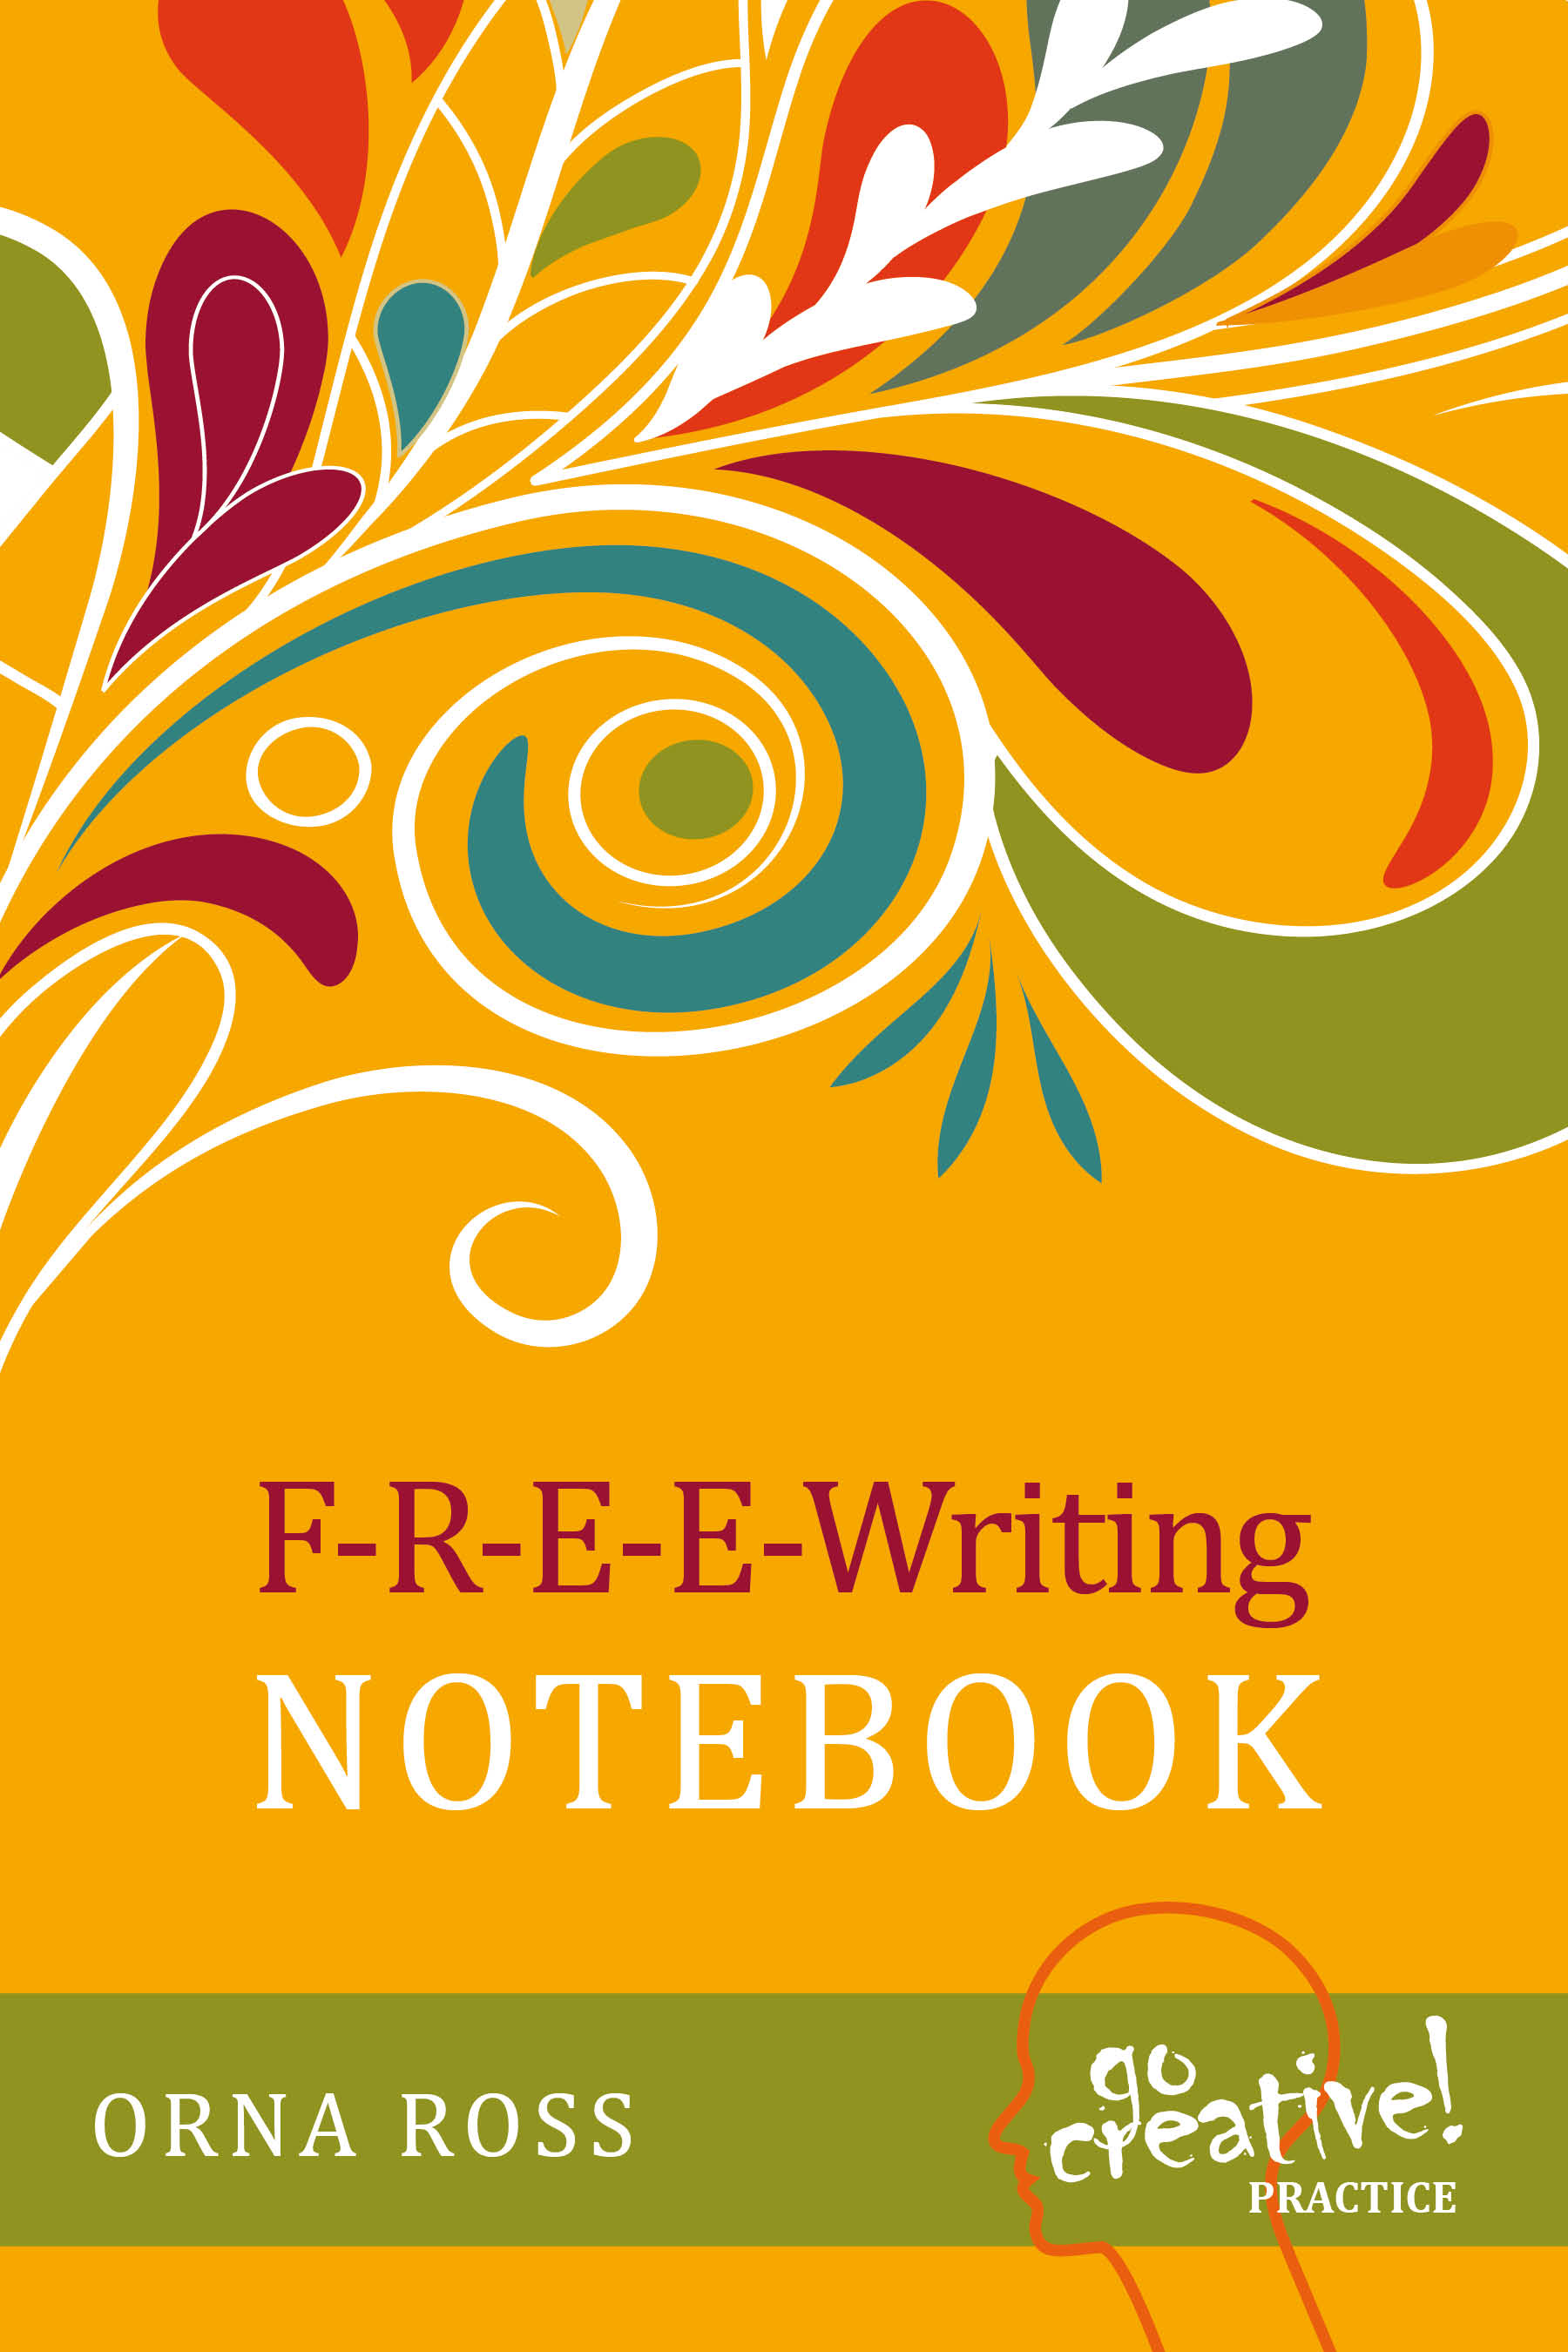 Part Four: Benefits of F-R-E-E-Writing